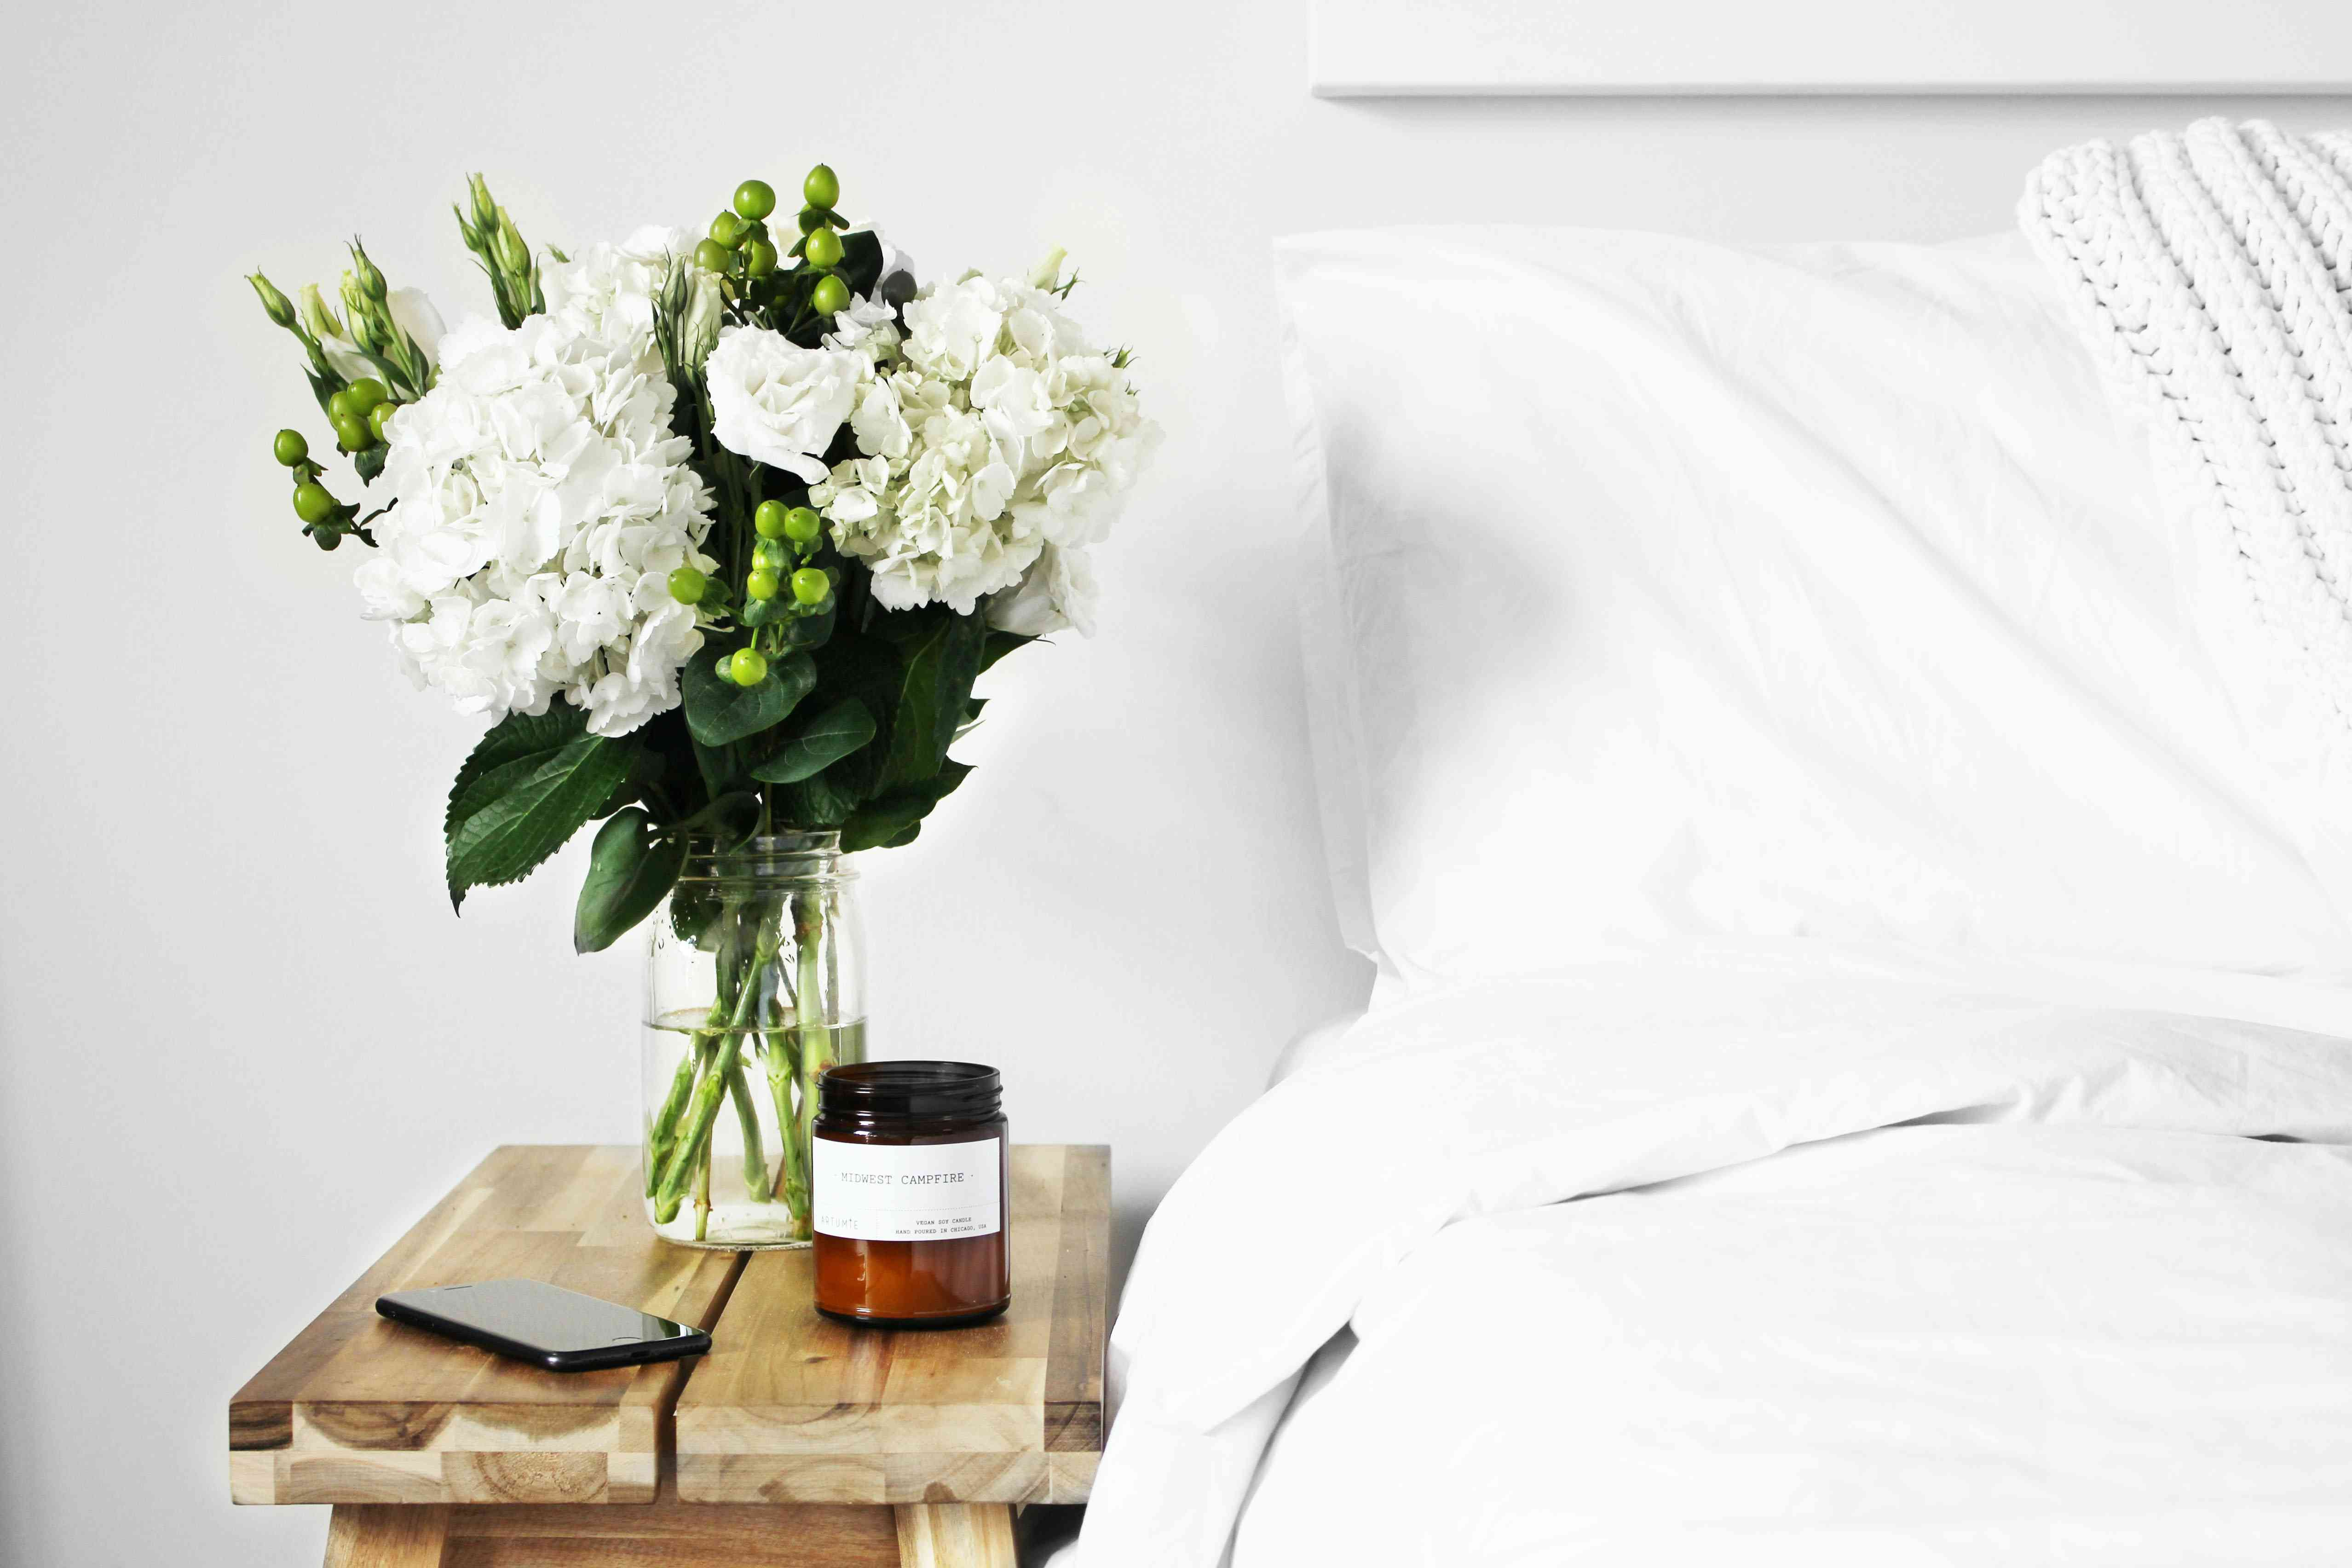 White bed linens and white flowers